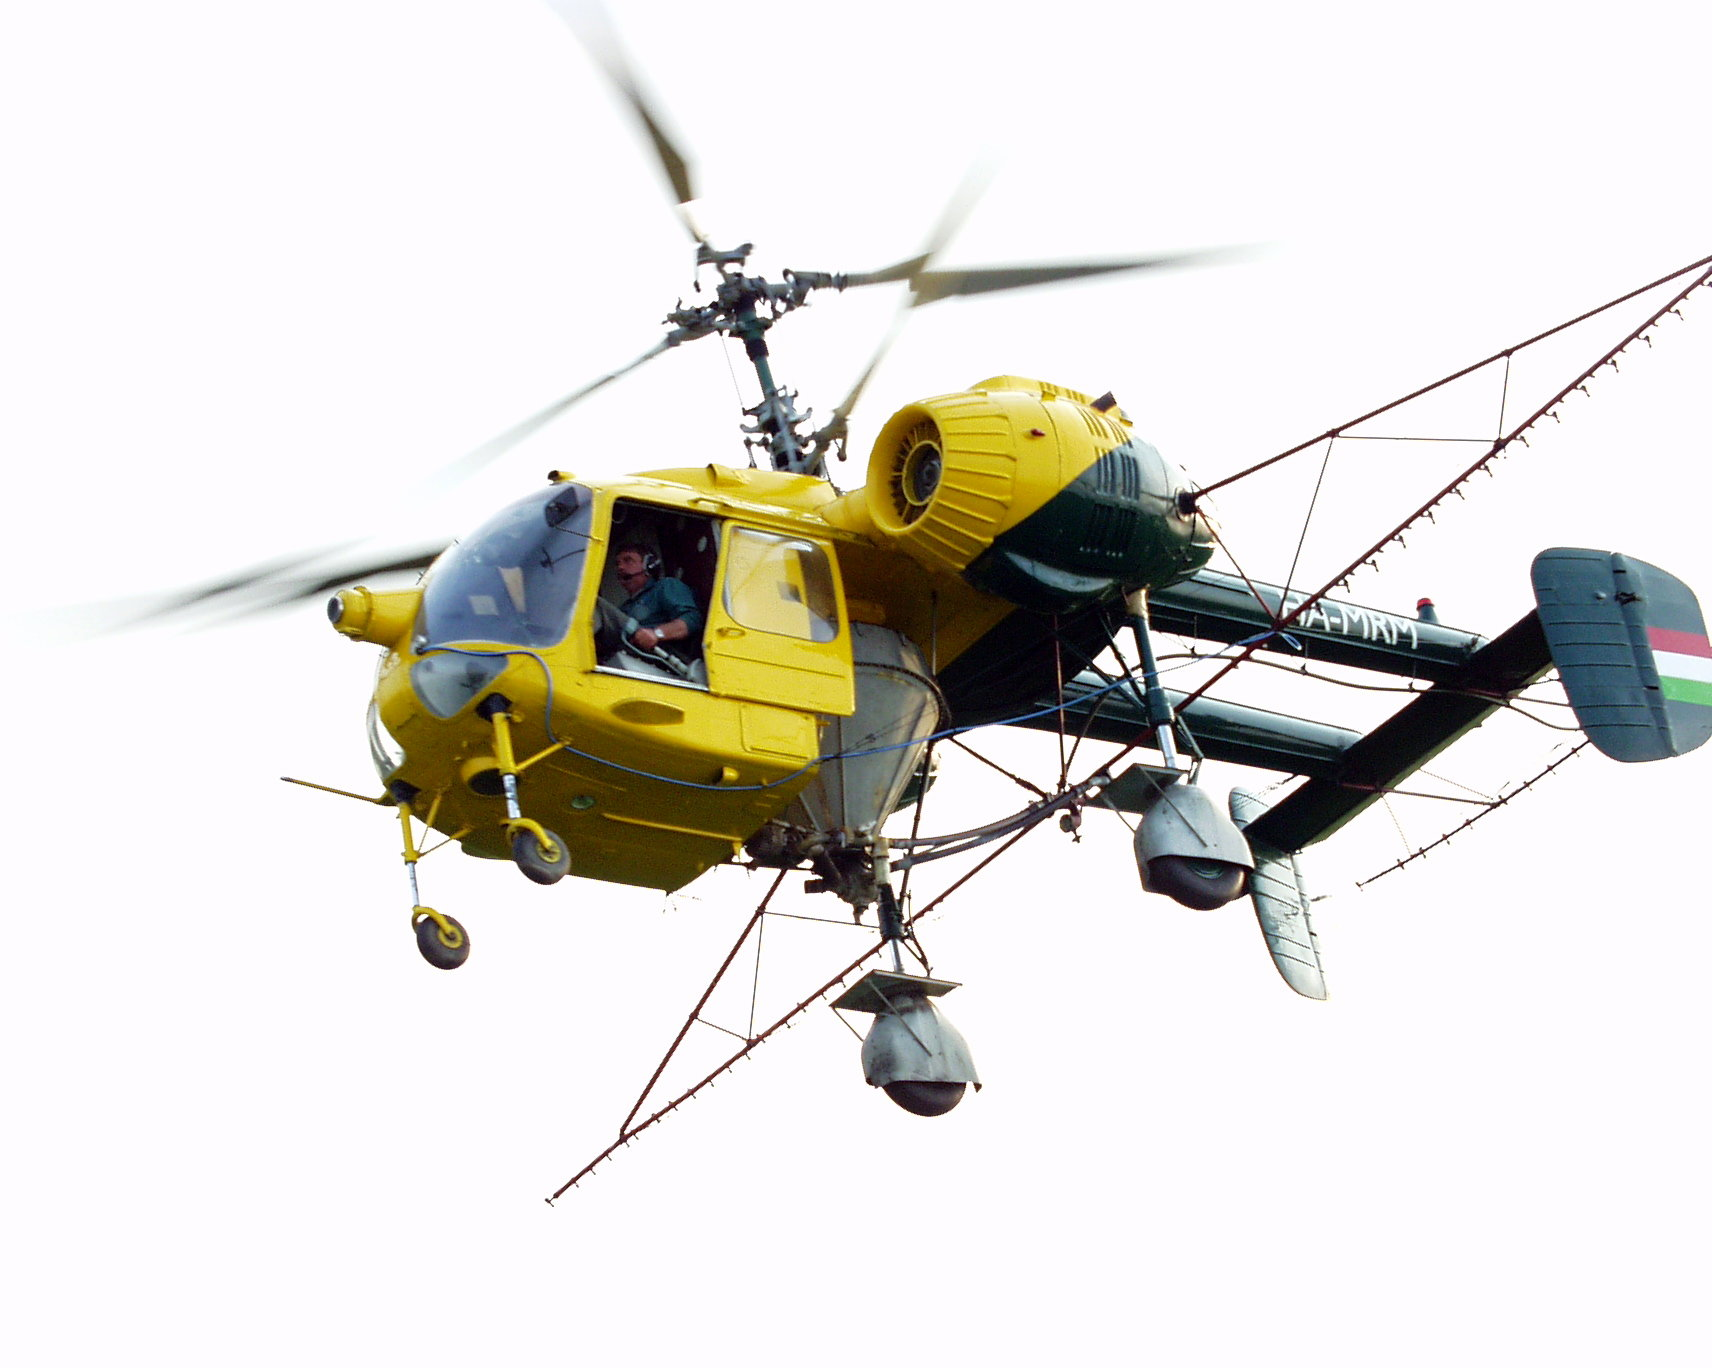 helicopter rotor system with File Helikopter 5 on Leading Edge Tubercles Inspired From Humpback Whale Flippers furthermore Showthread besides H225 40 in addition Calculate Quadrotor Propeller Torque Due To Aerodynamic Drag further File Heli flight controls dia.